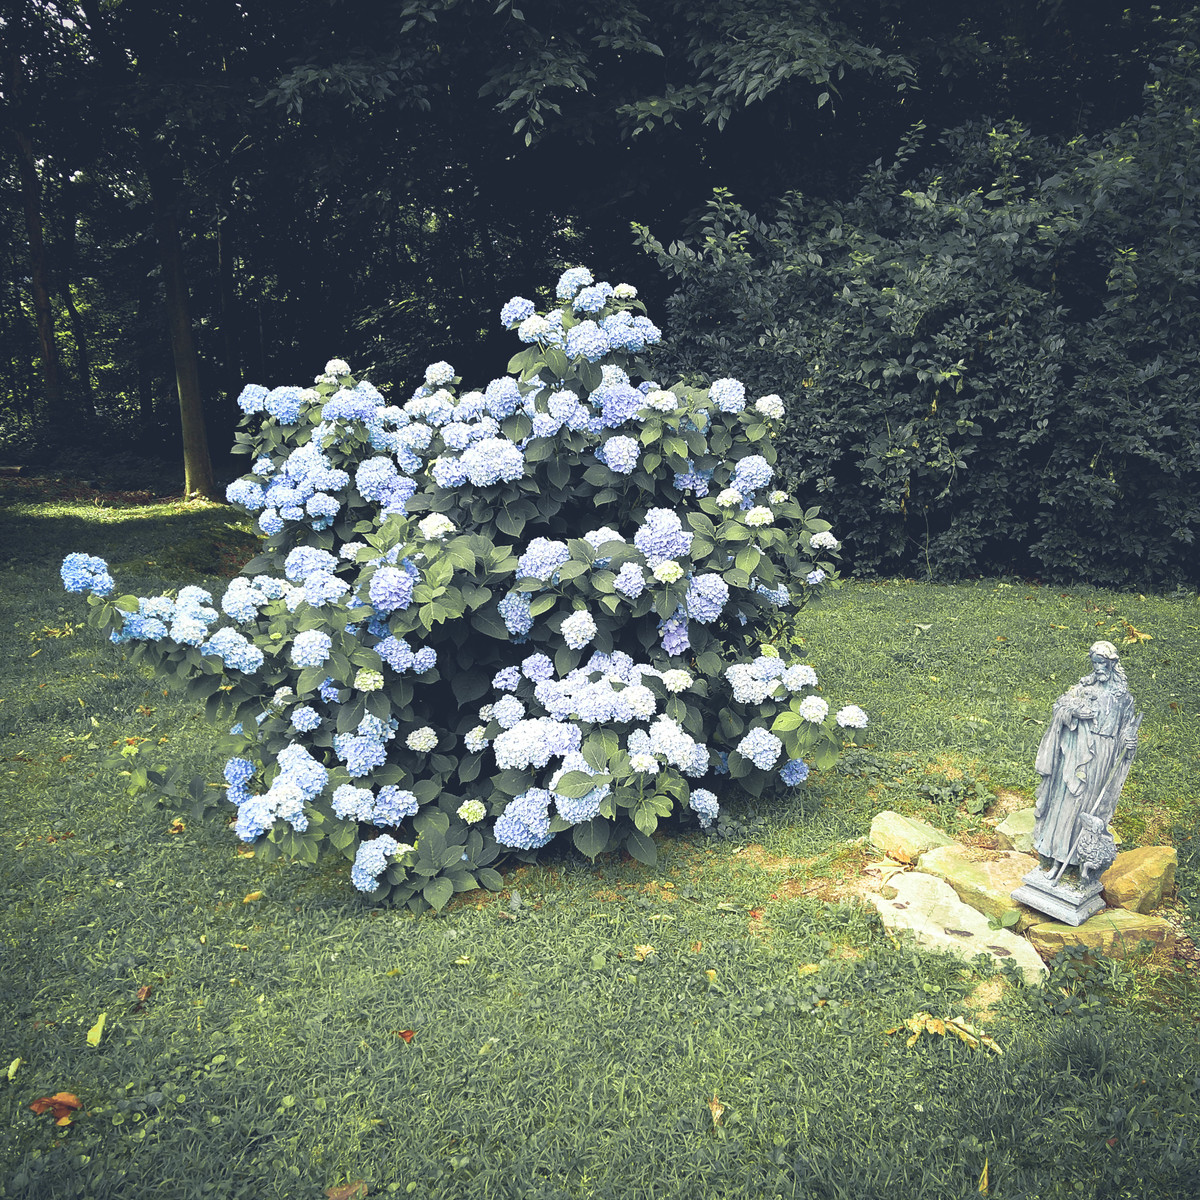 crooked Jesus and the blessed hydrangea